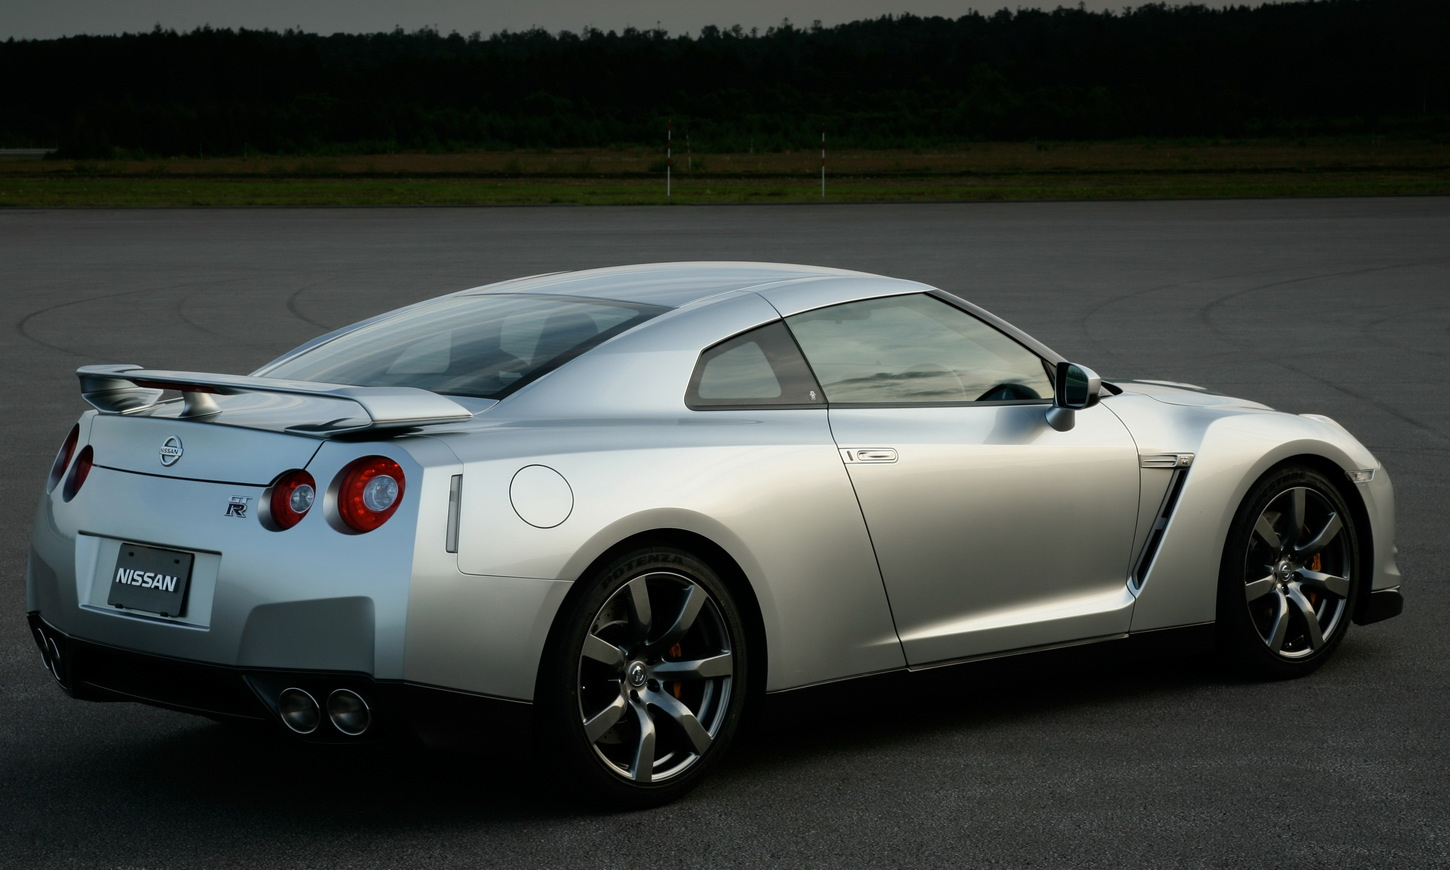 2009 Nissan GT-R Sport Car Review